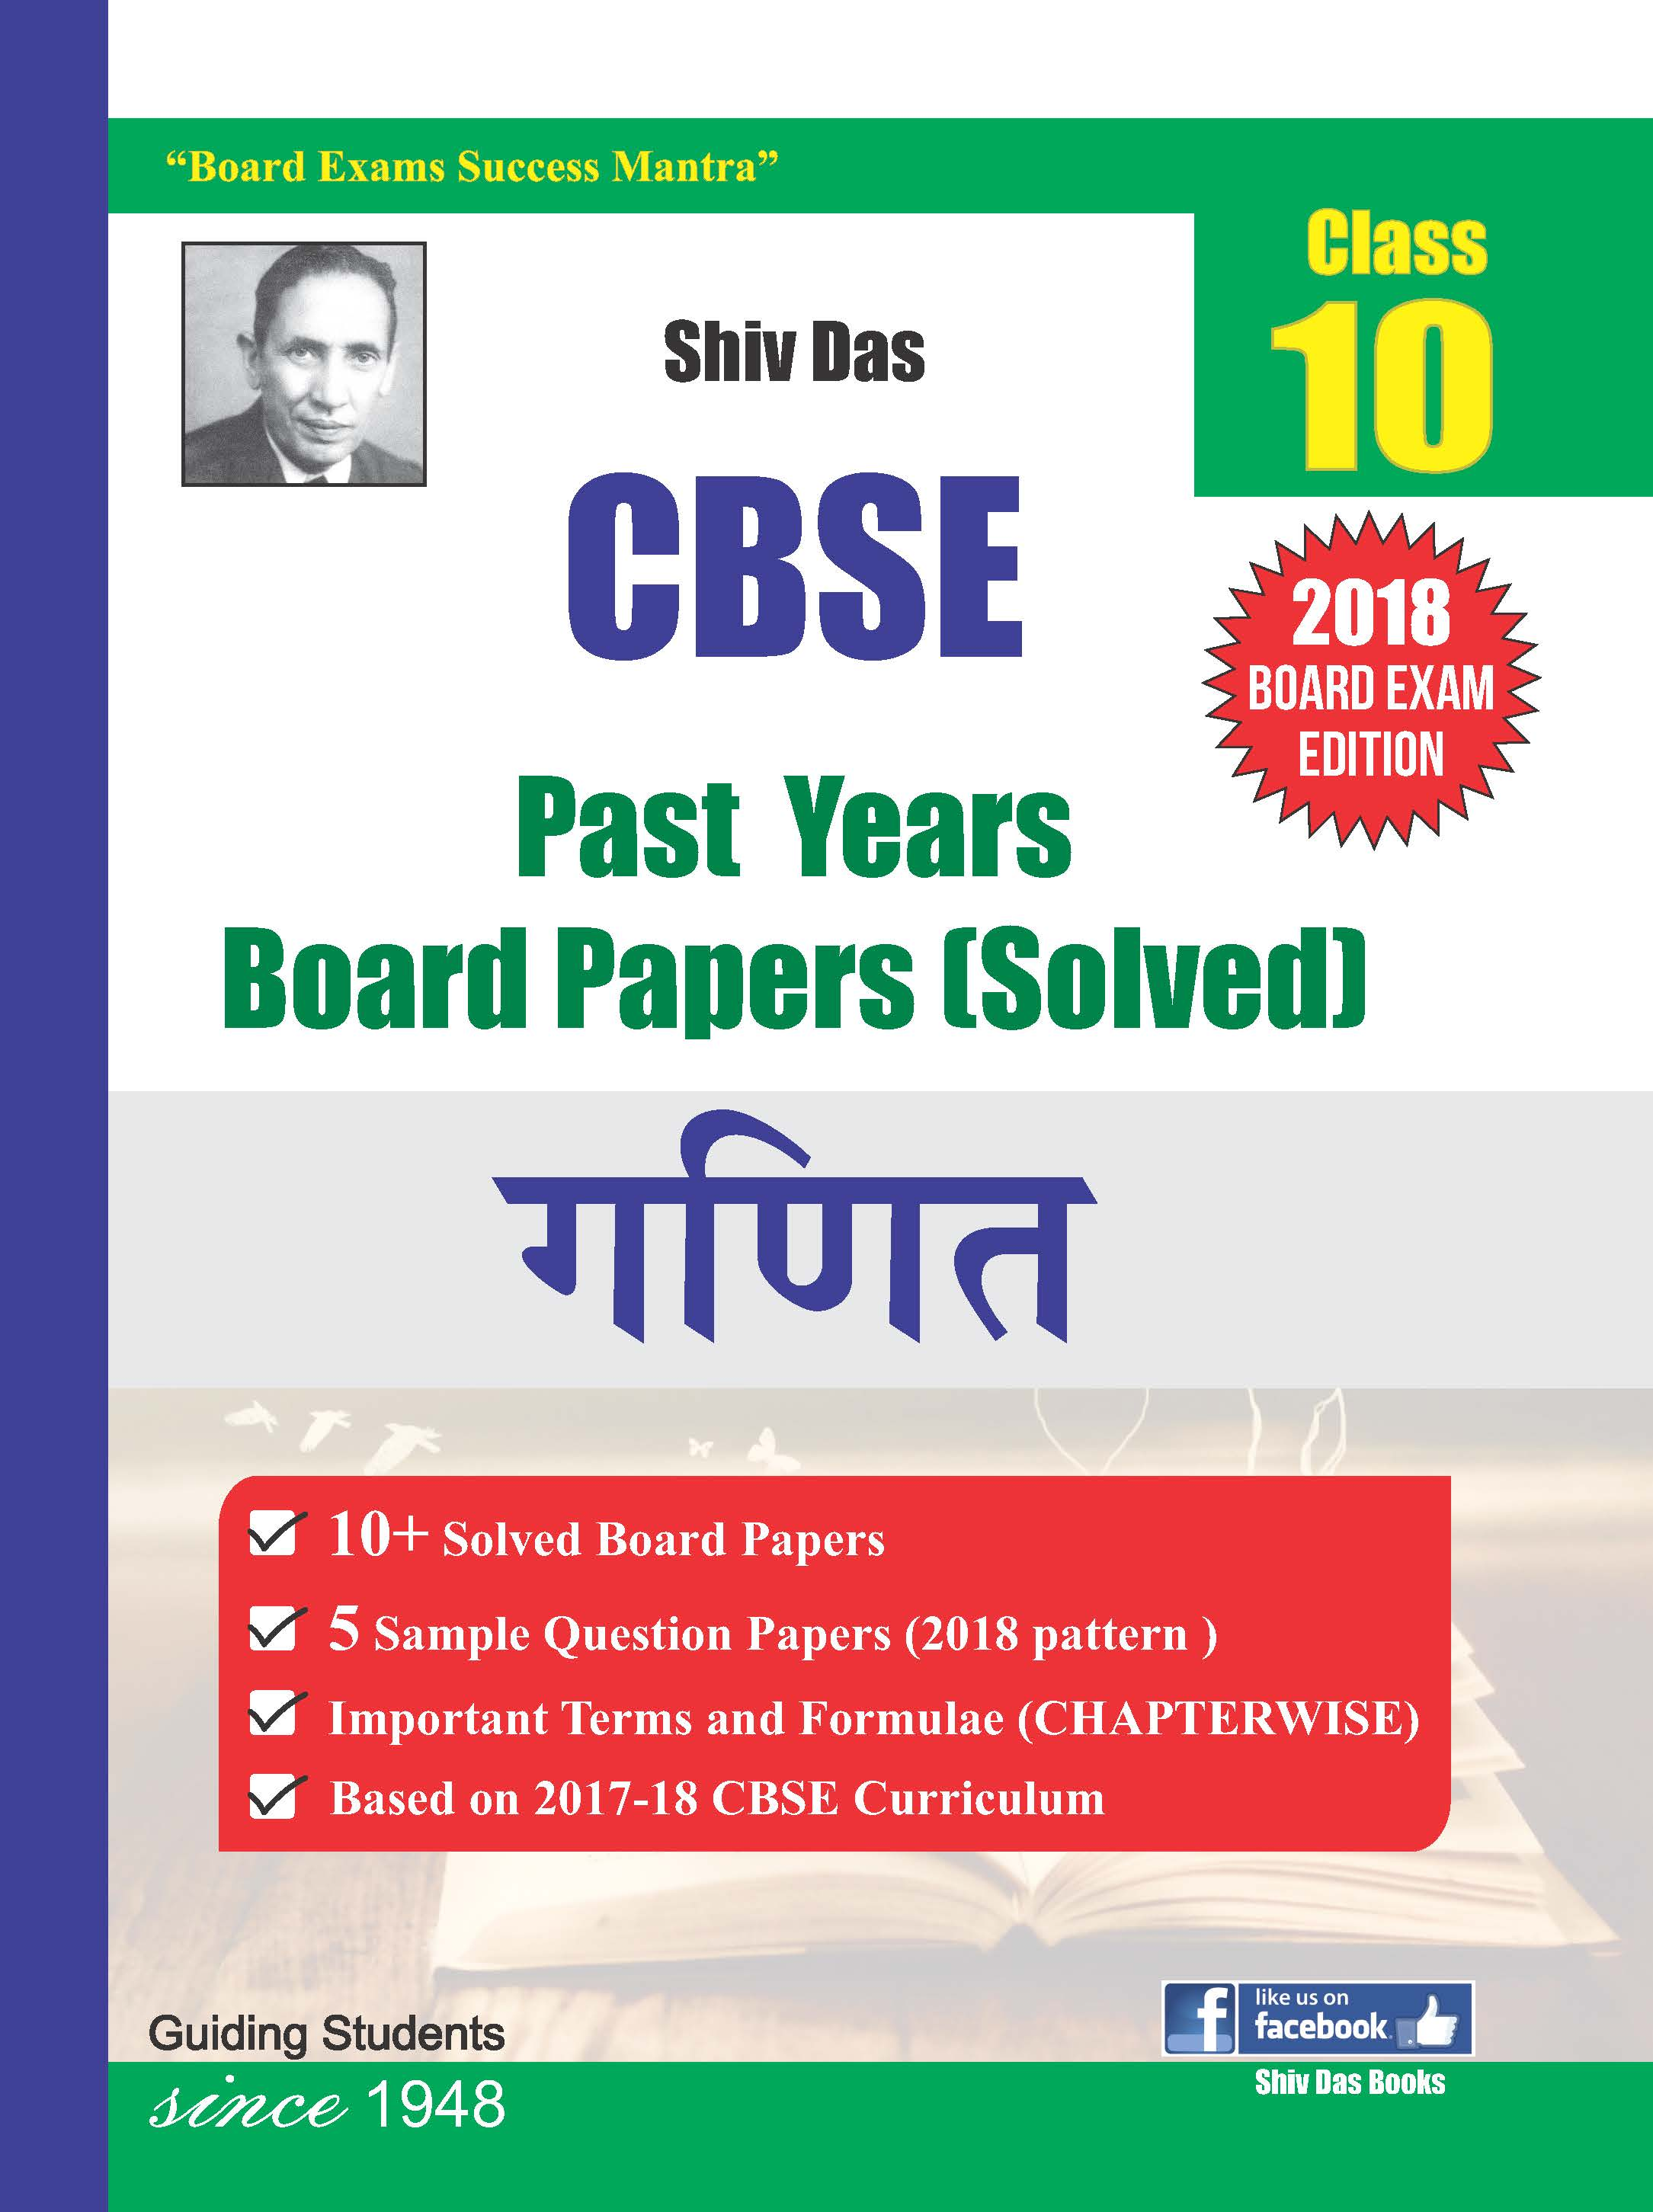 Class 10 CBSE Past Year Board Papers (Solved) Ganit